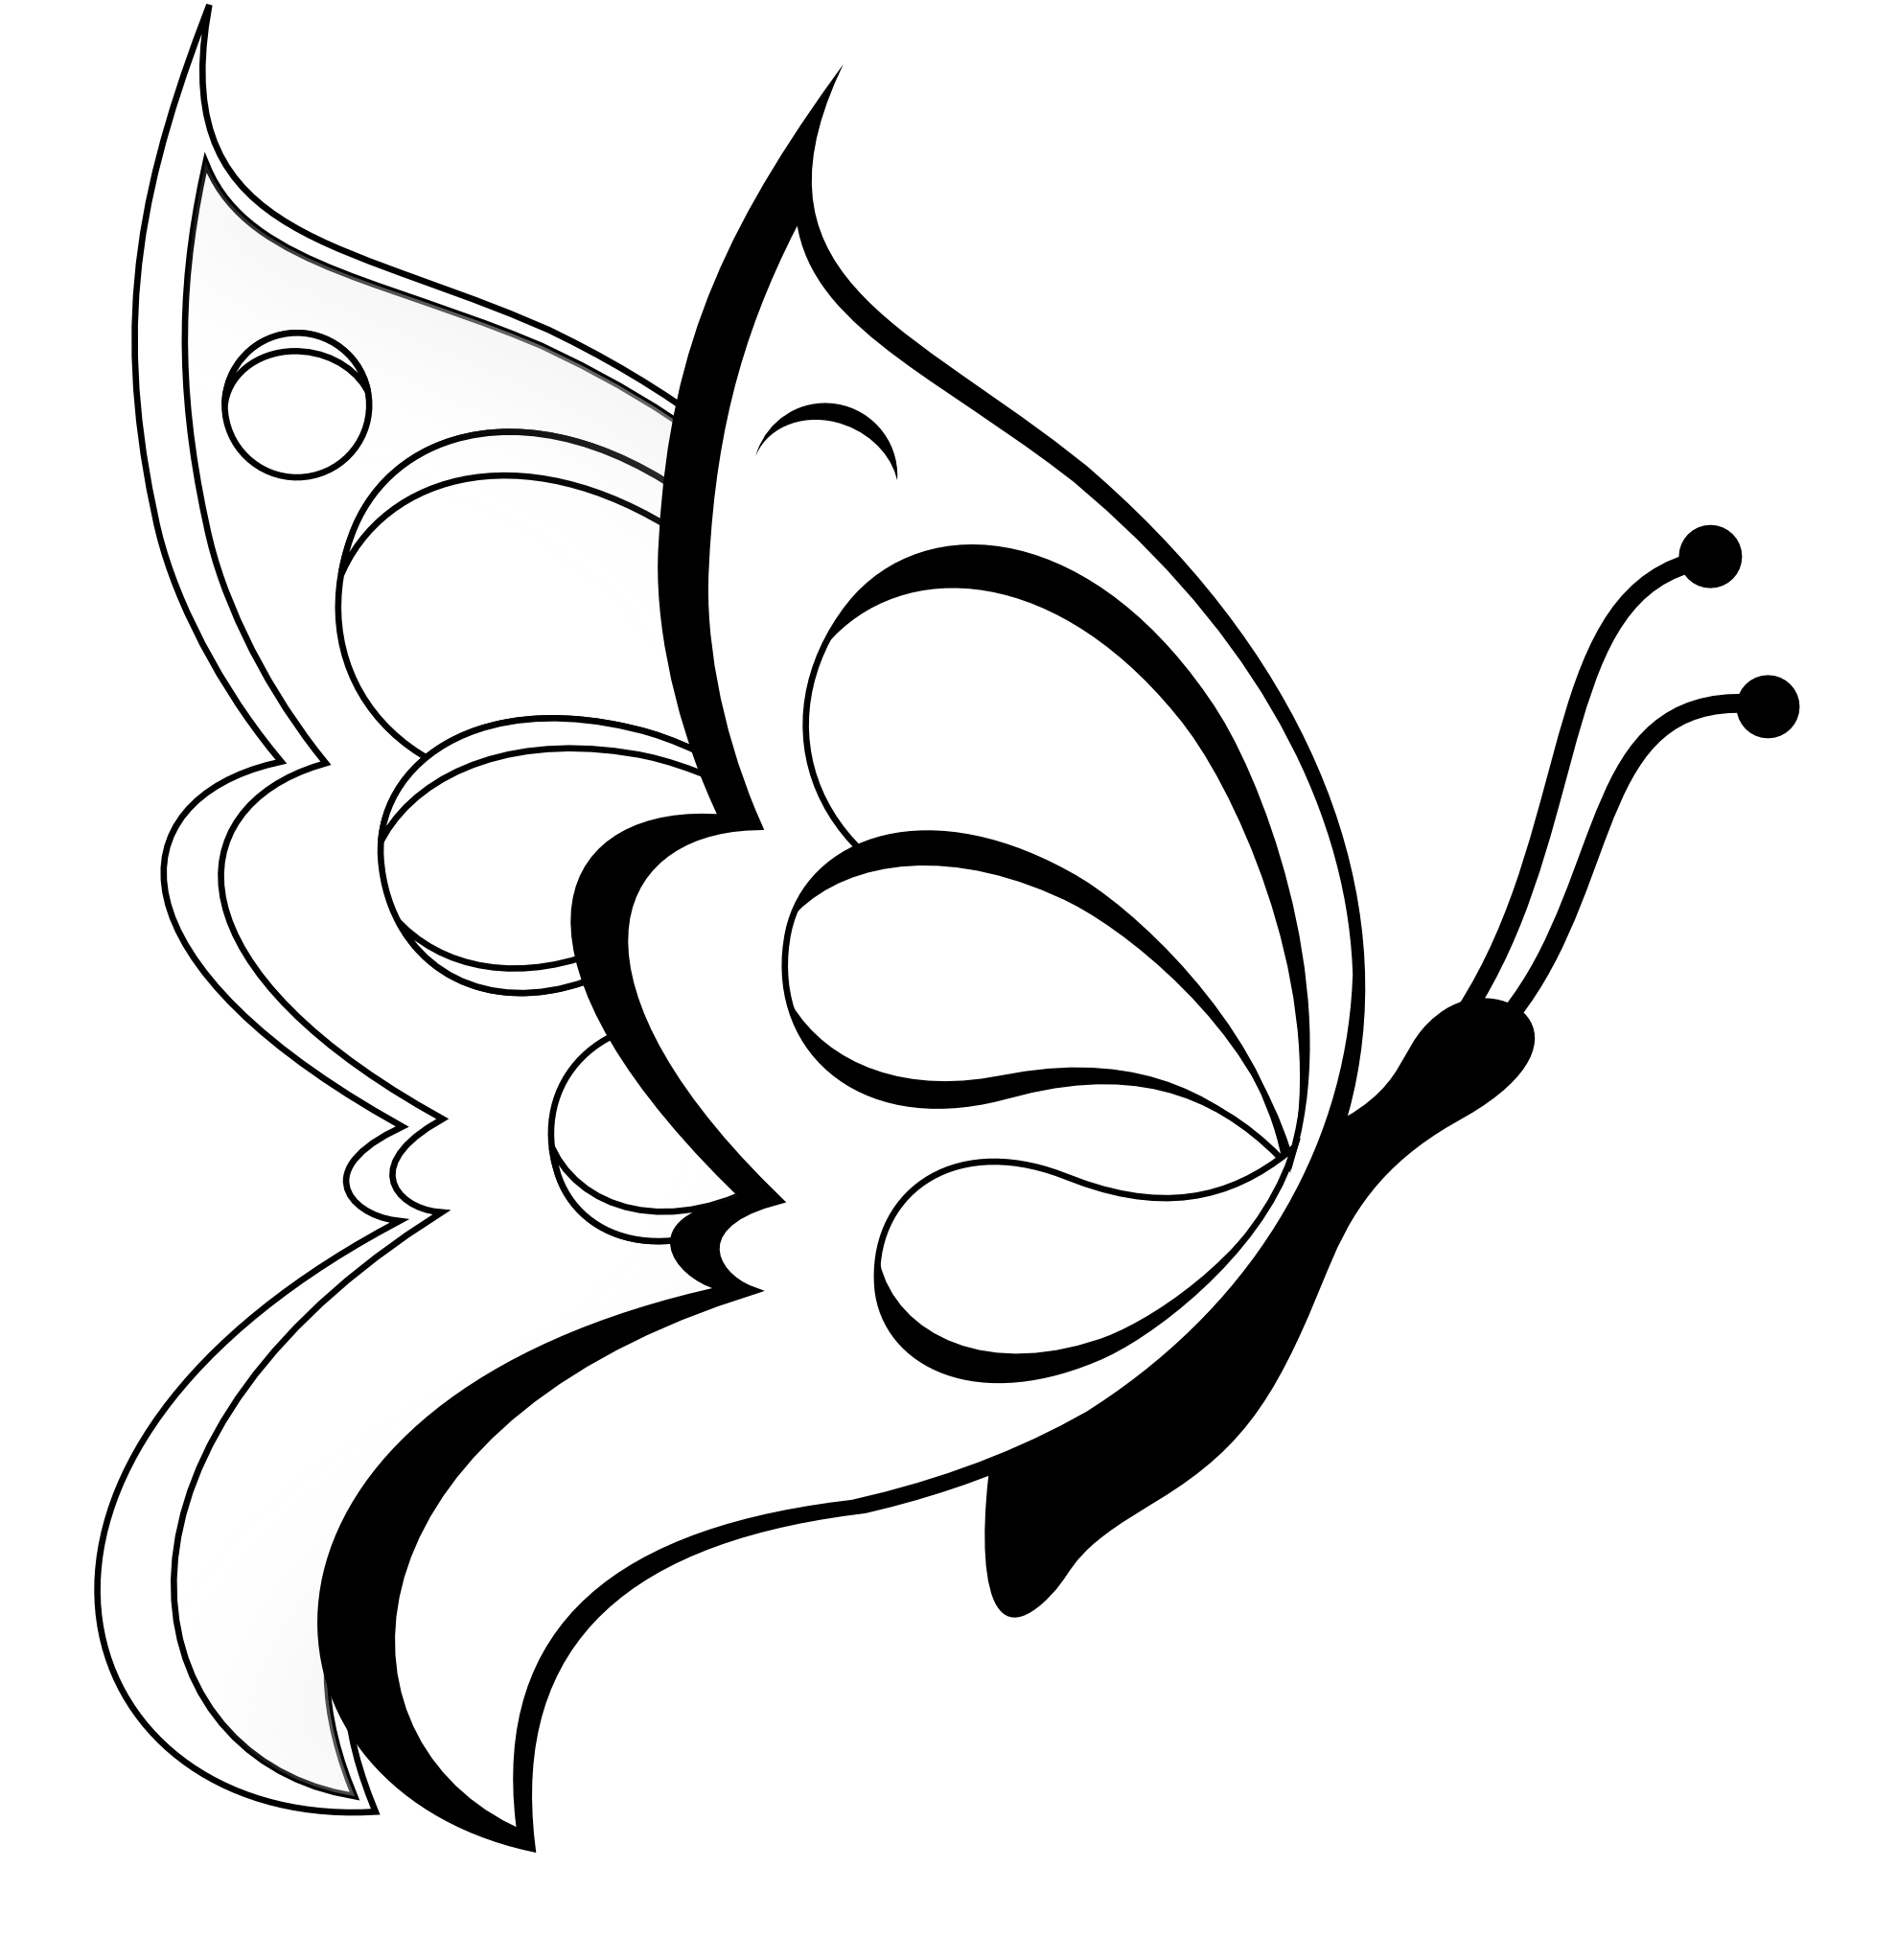 Wing clipart coloring page. Butterfly black white line